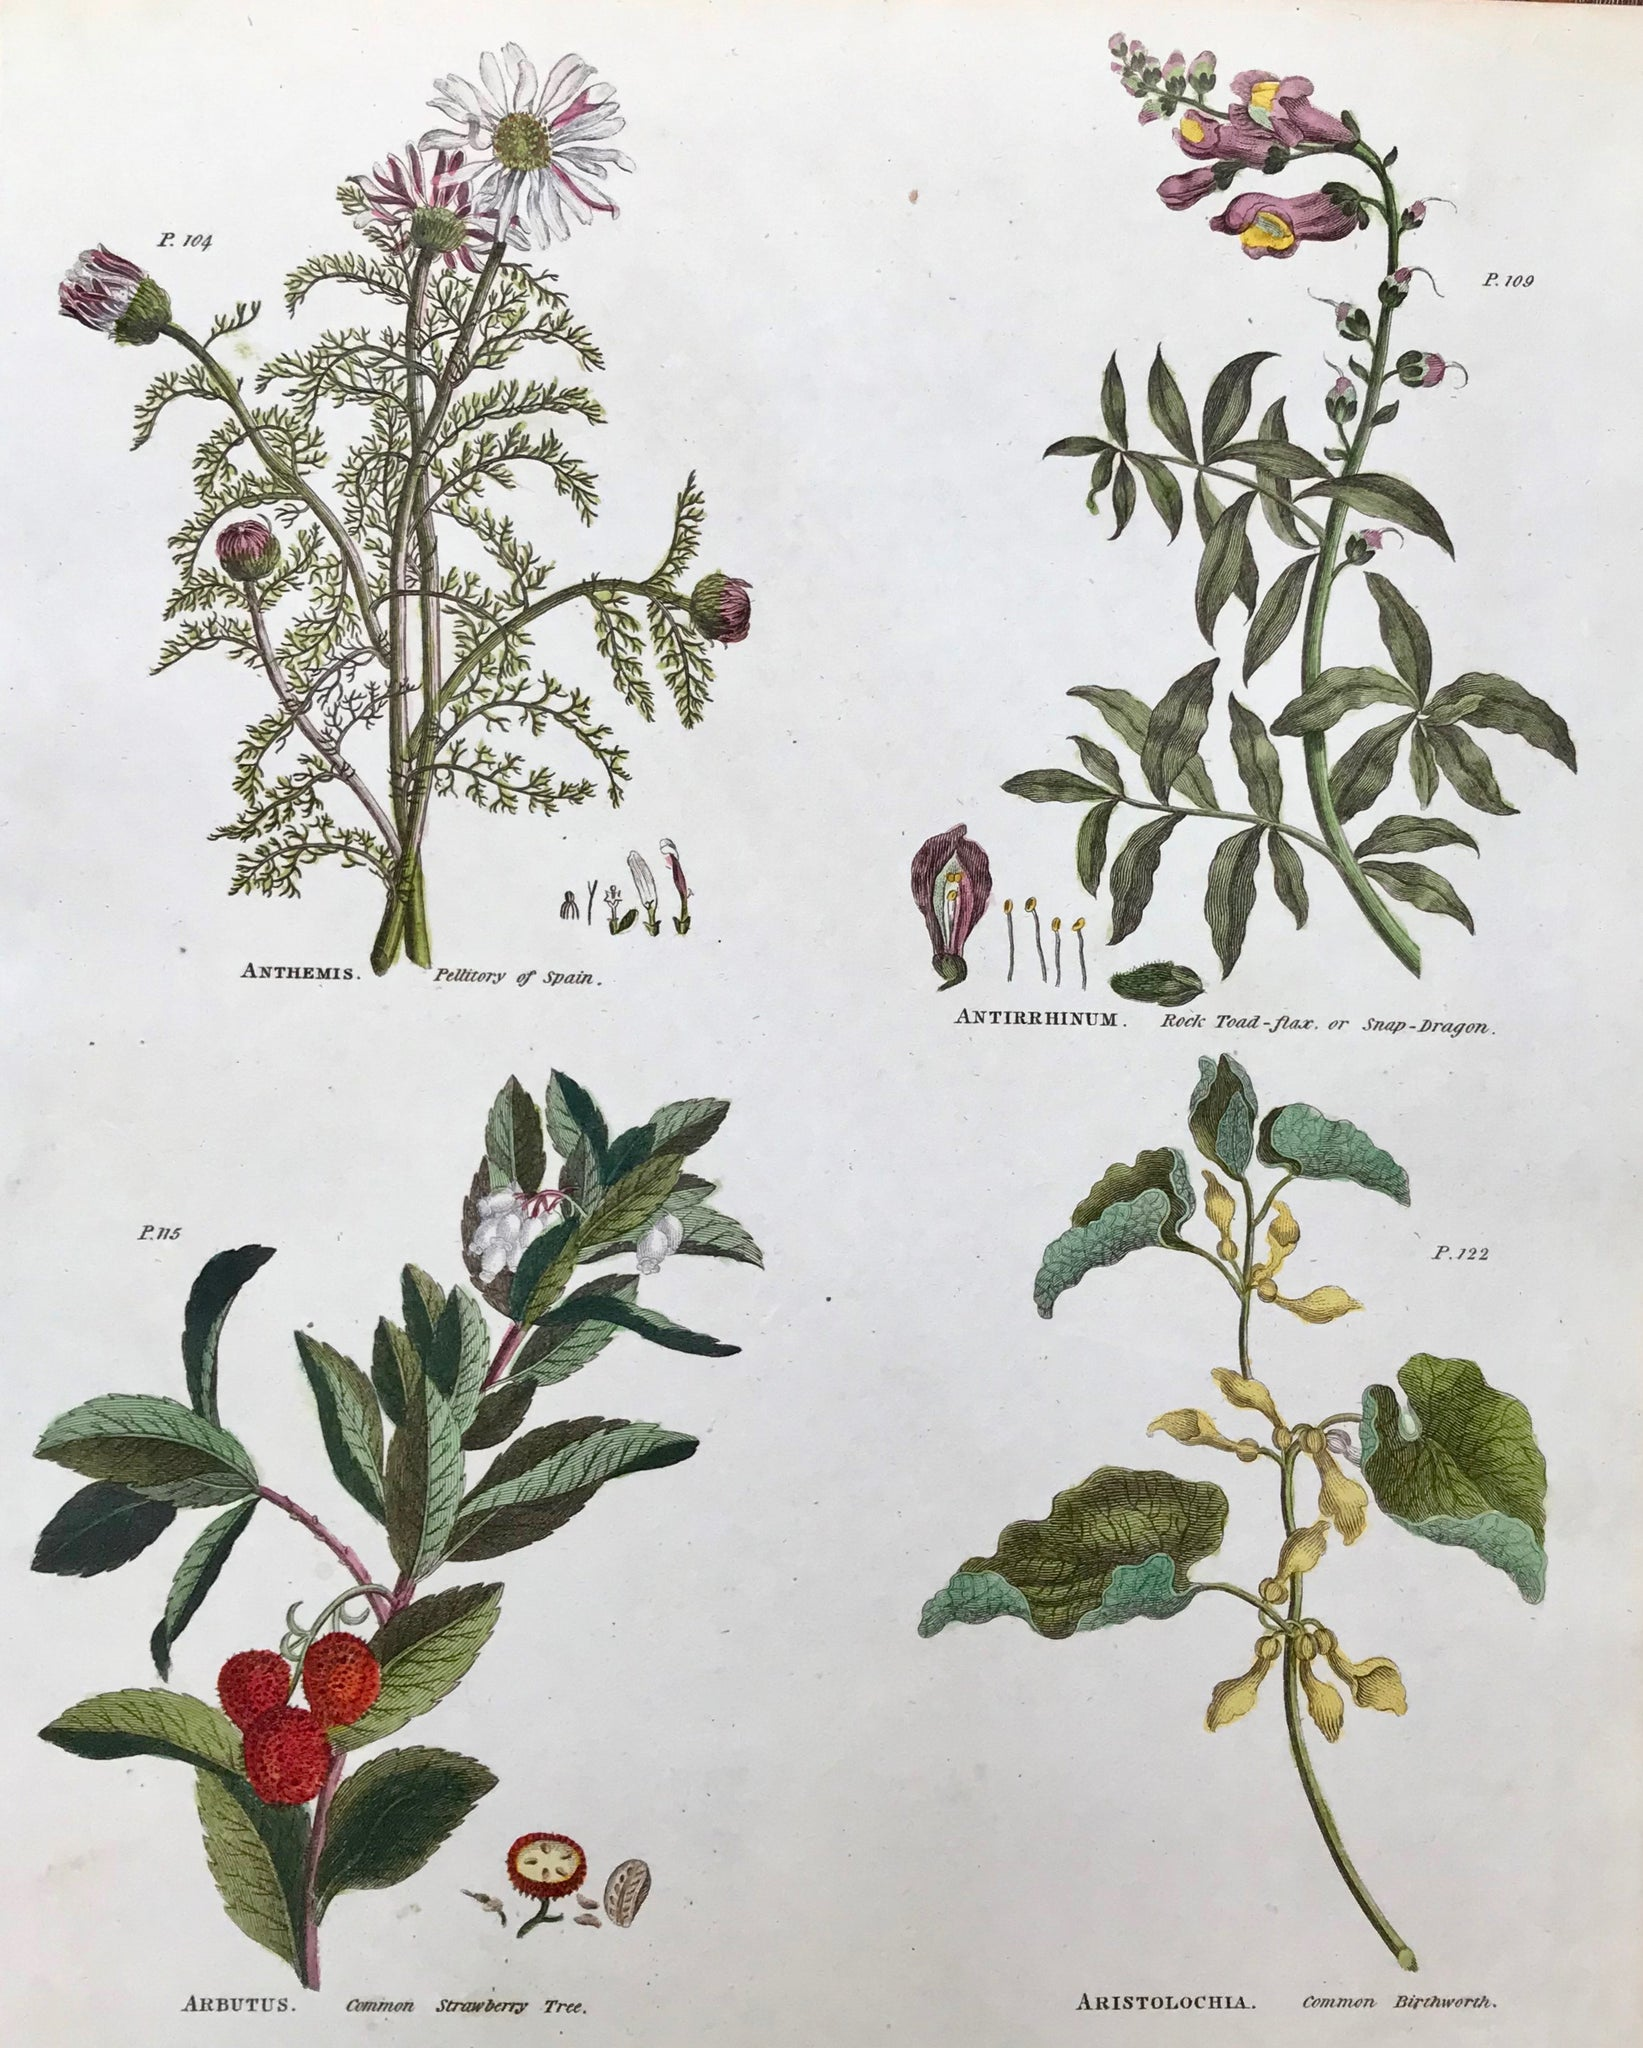 "Upper left: Anthemis Pellitory of Spain Upper right: Antirrhinum Rock Toad Flax or Snap Dragon Lower Left: Arbutus Common Strawberry Tree Lower right: Aristolochia Common Birthwort      Antique Botanical Prints from  ""The Universal Herbal"" by Thomas Green.  The complete title of this accurately and absolutely delightfully hand-colored work is: ""The Universal Herbal"", or Botanical, Medical, and Agricultural Dictionary, containing an Account of all the known Plants in the World arranged according to the"